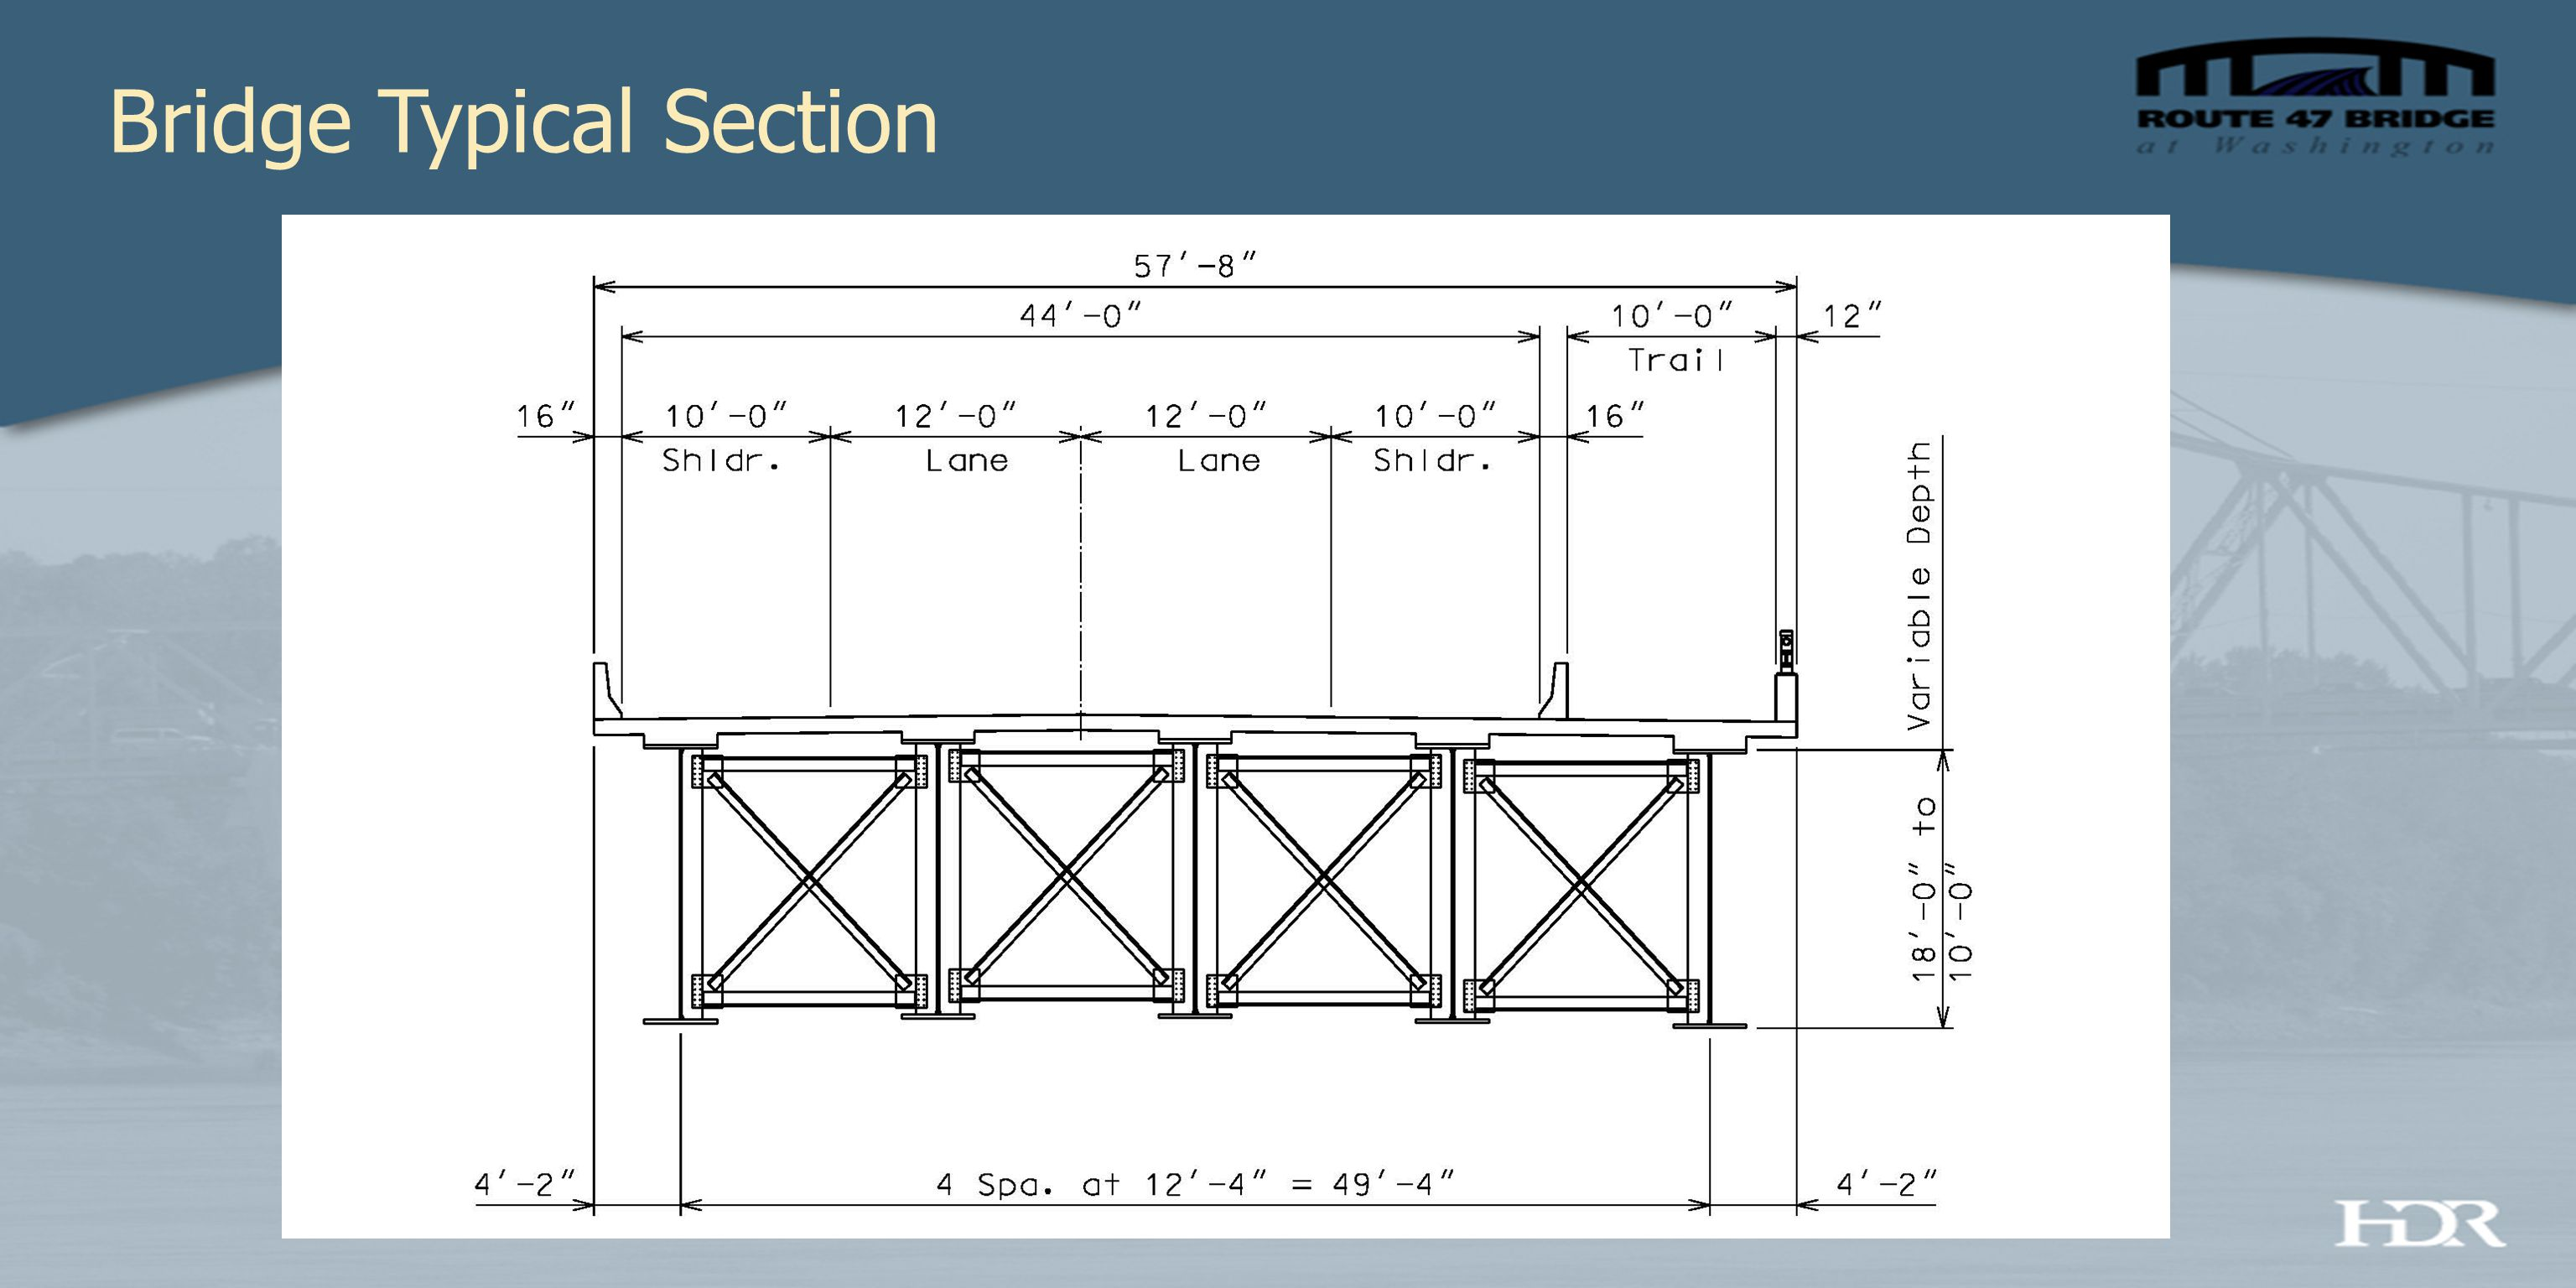 Preferred Enhancement Package Decorative Rail + Girder Lighting + Pier Lighting + Trail Lighting PrioritizationEnhancementEstimated Cost (4)Estimated Cost (4A) 1 Decorative Railing (Addition to MoDOT Credit) $380,000 2 Girder Lighting – Fade (west face only) $587,000 Girder Lighting – Fade (east and west face) $1,133,000 3 Pier Lighting $172,000 4 Trail Lighting (full length) $137,000 SUBTOTAL $1,276,000$1,822,000 3% Inflation for 3 years (9.27%) $118,000$169,000 TOTAL $1,394,000$1,991,000